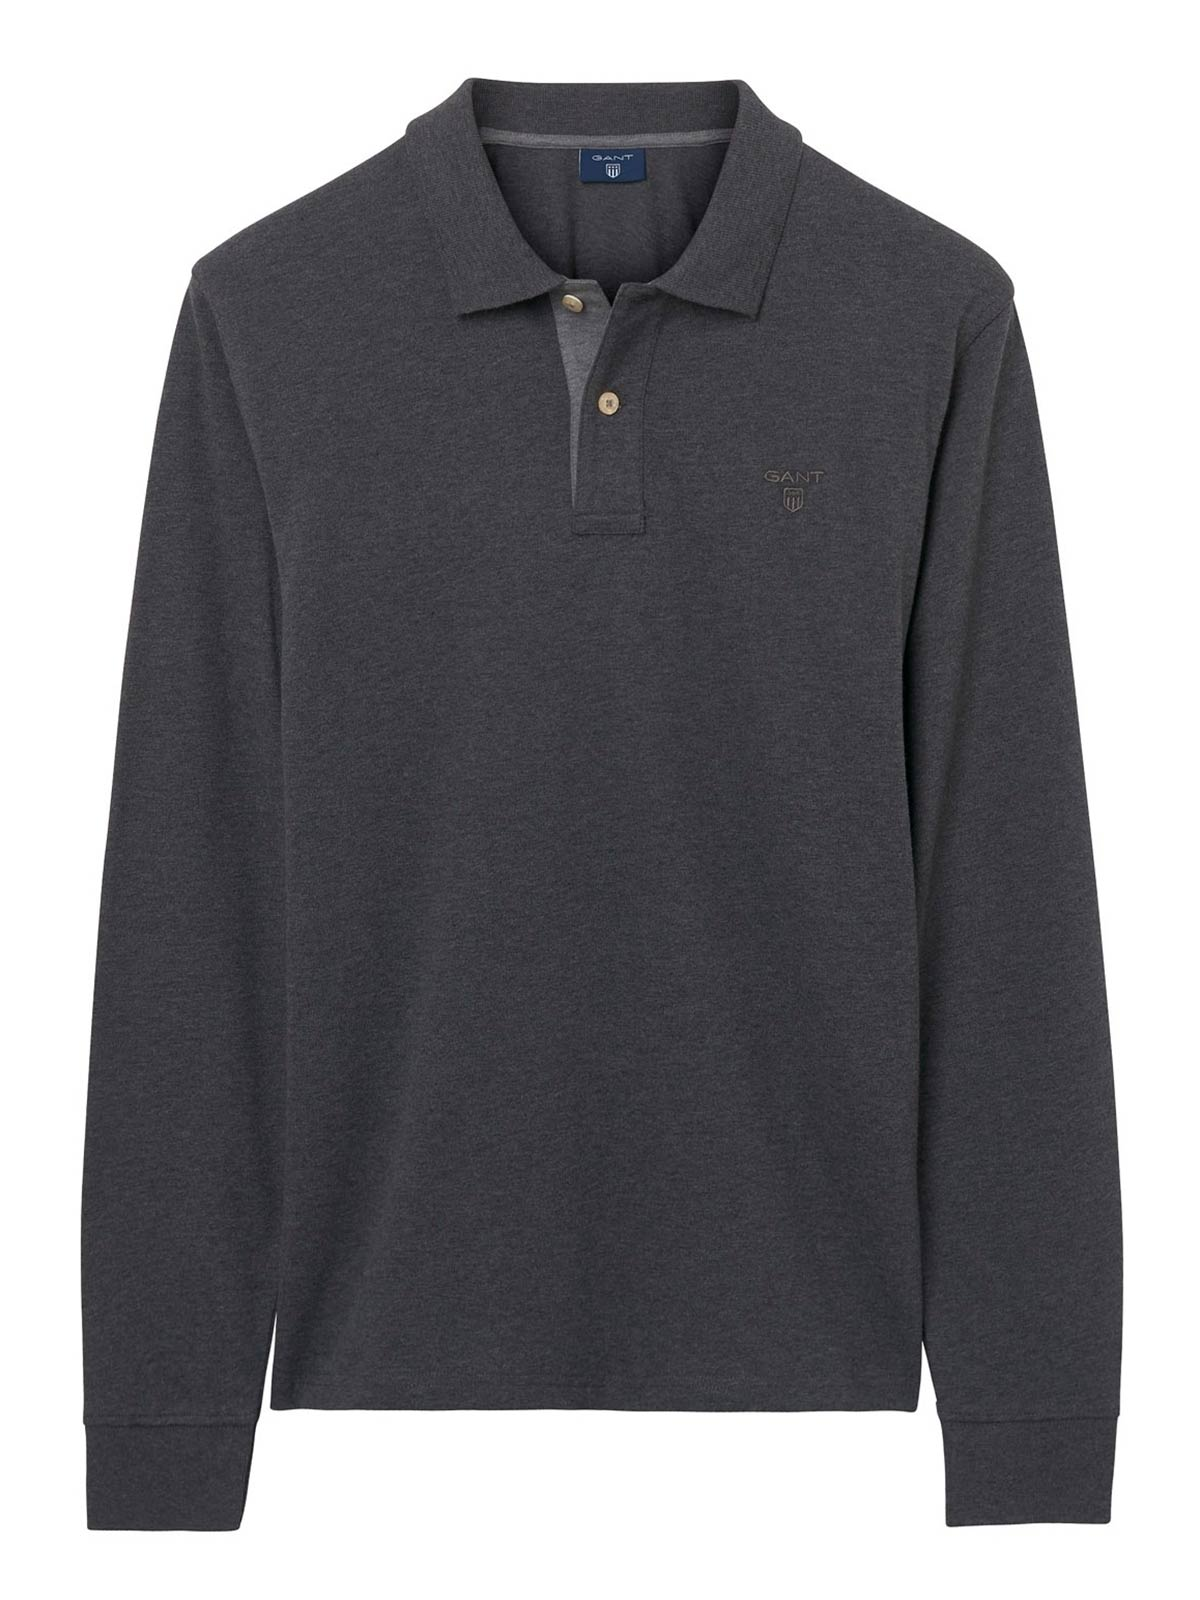 Picture of GANT | Men's Contrast Collar Polo Shirt